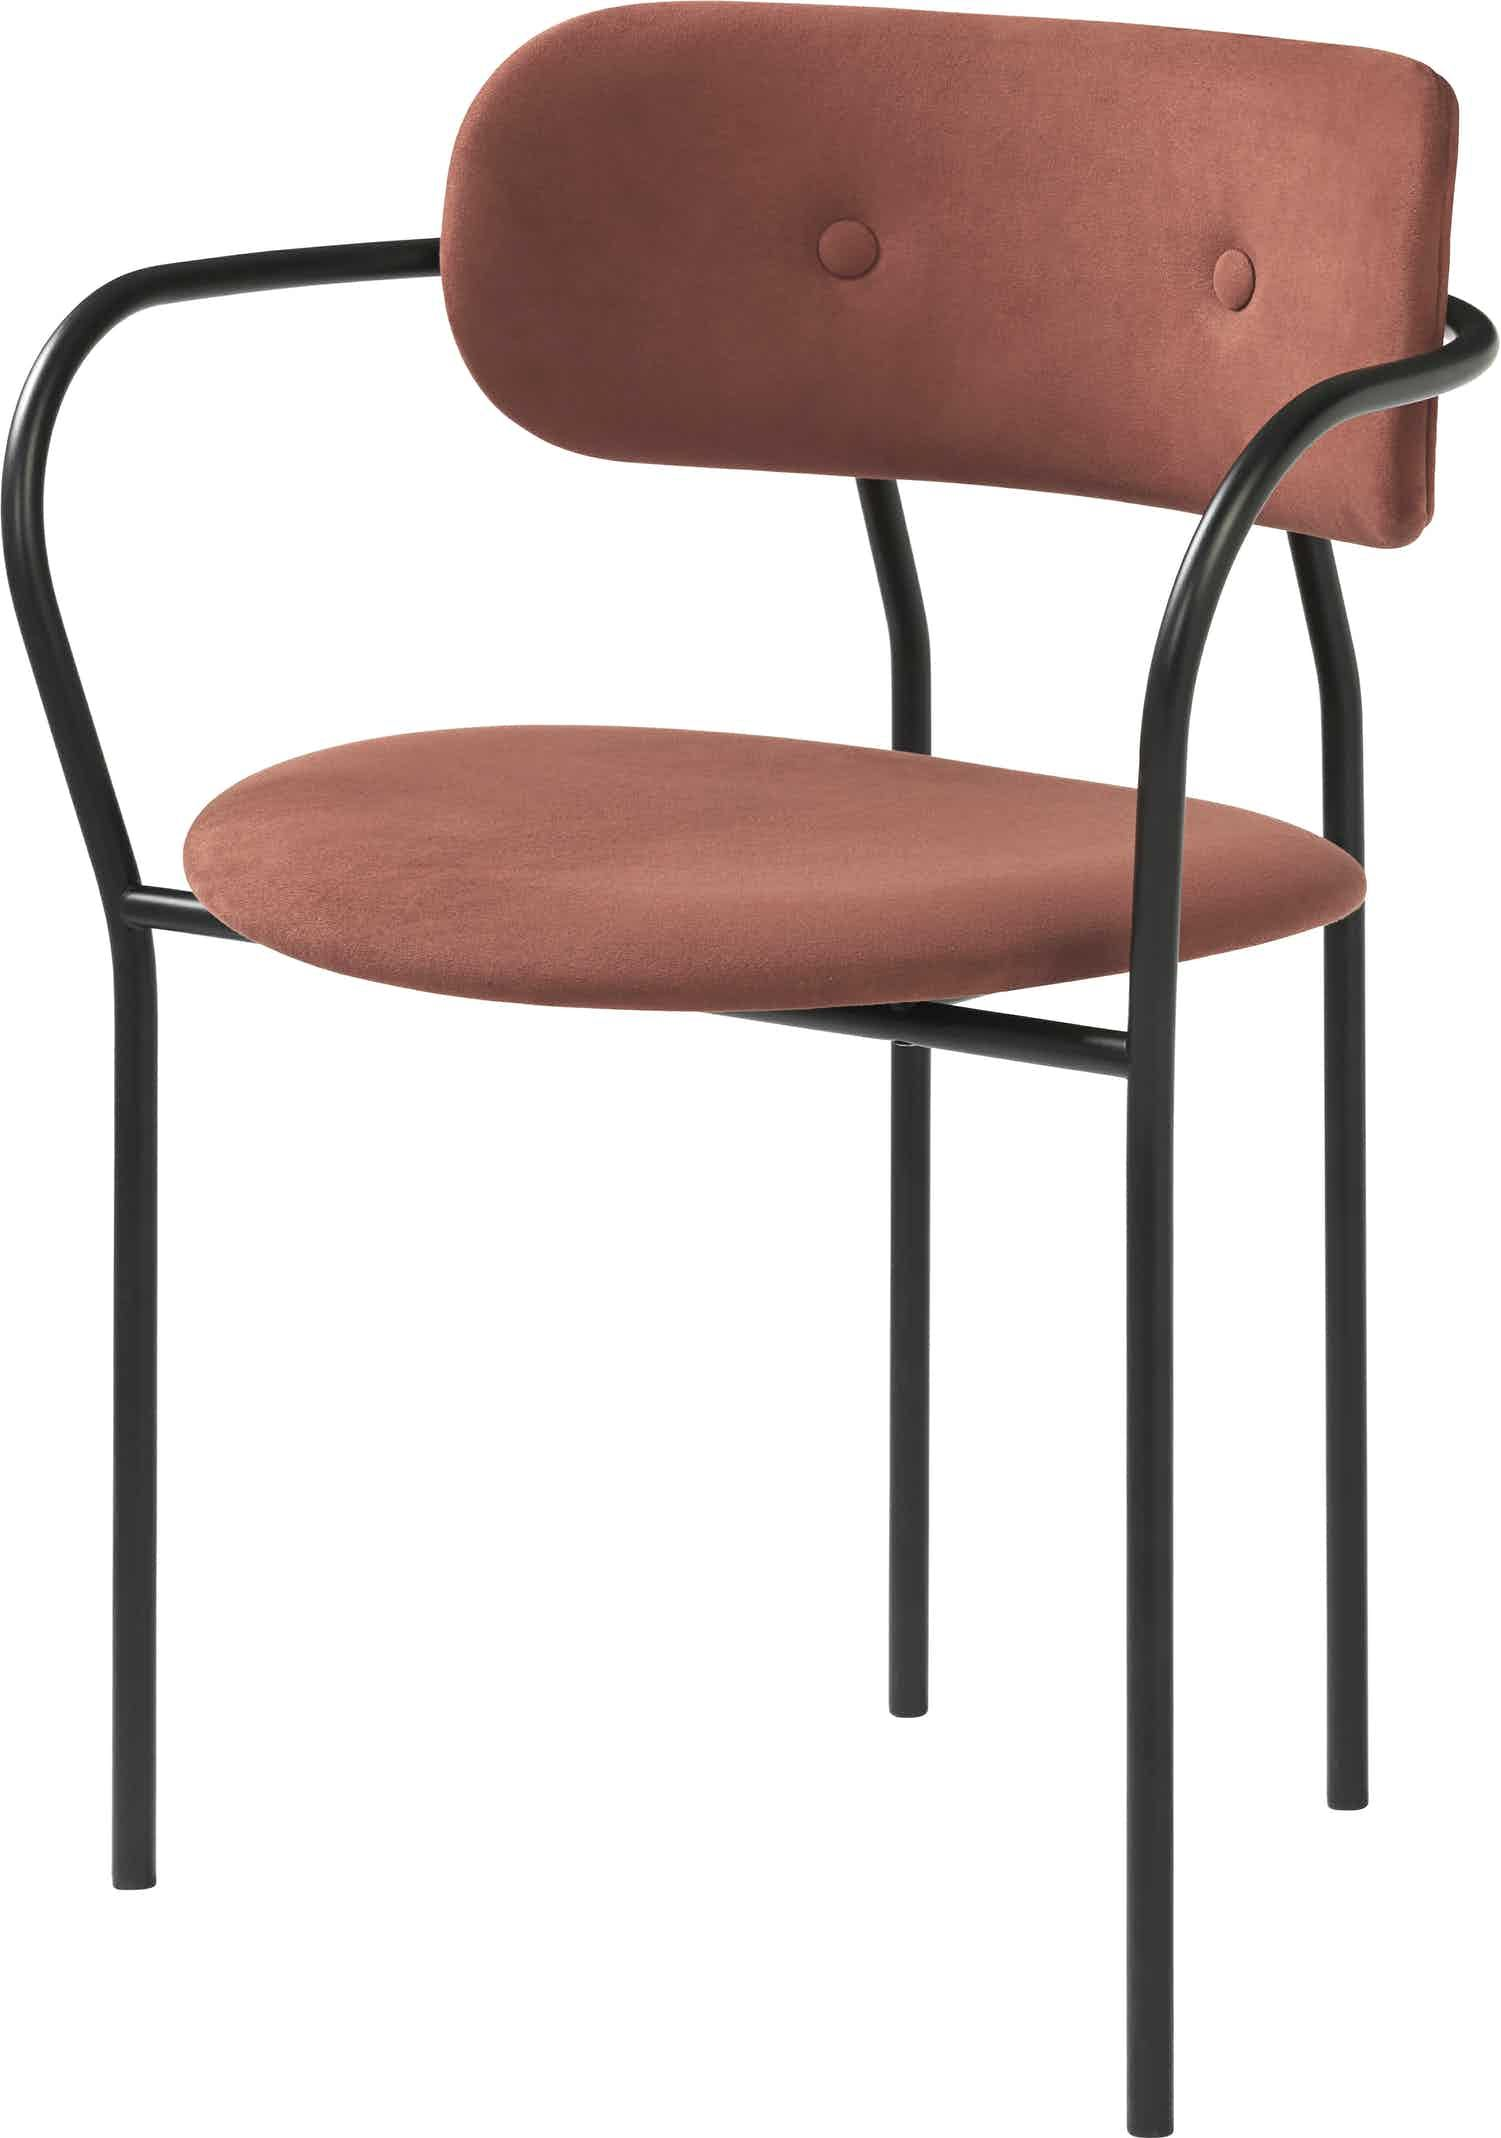 best website 9808d f6f99 Coco Dining Chair with Armrest by Gubi, now available at ...